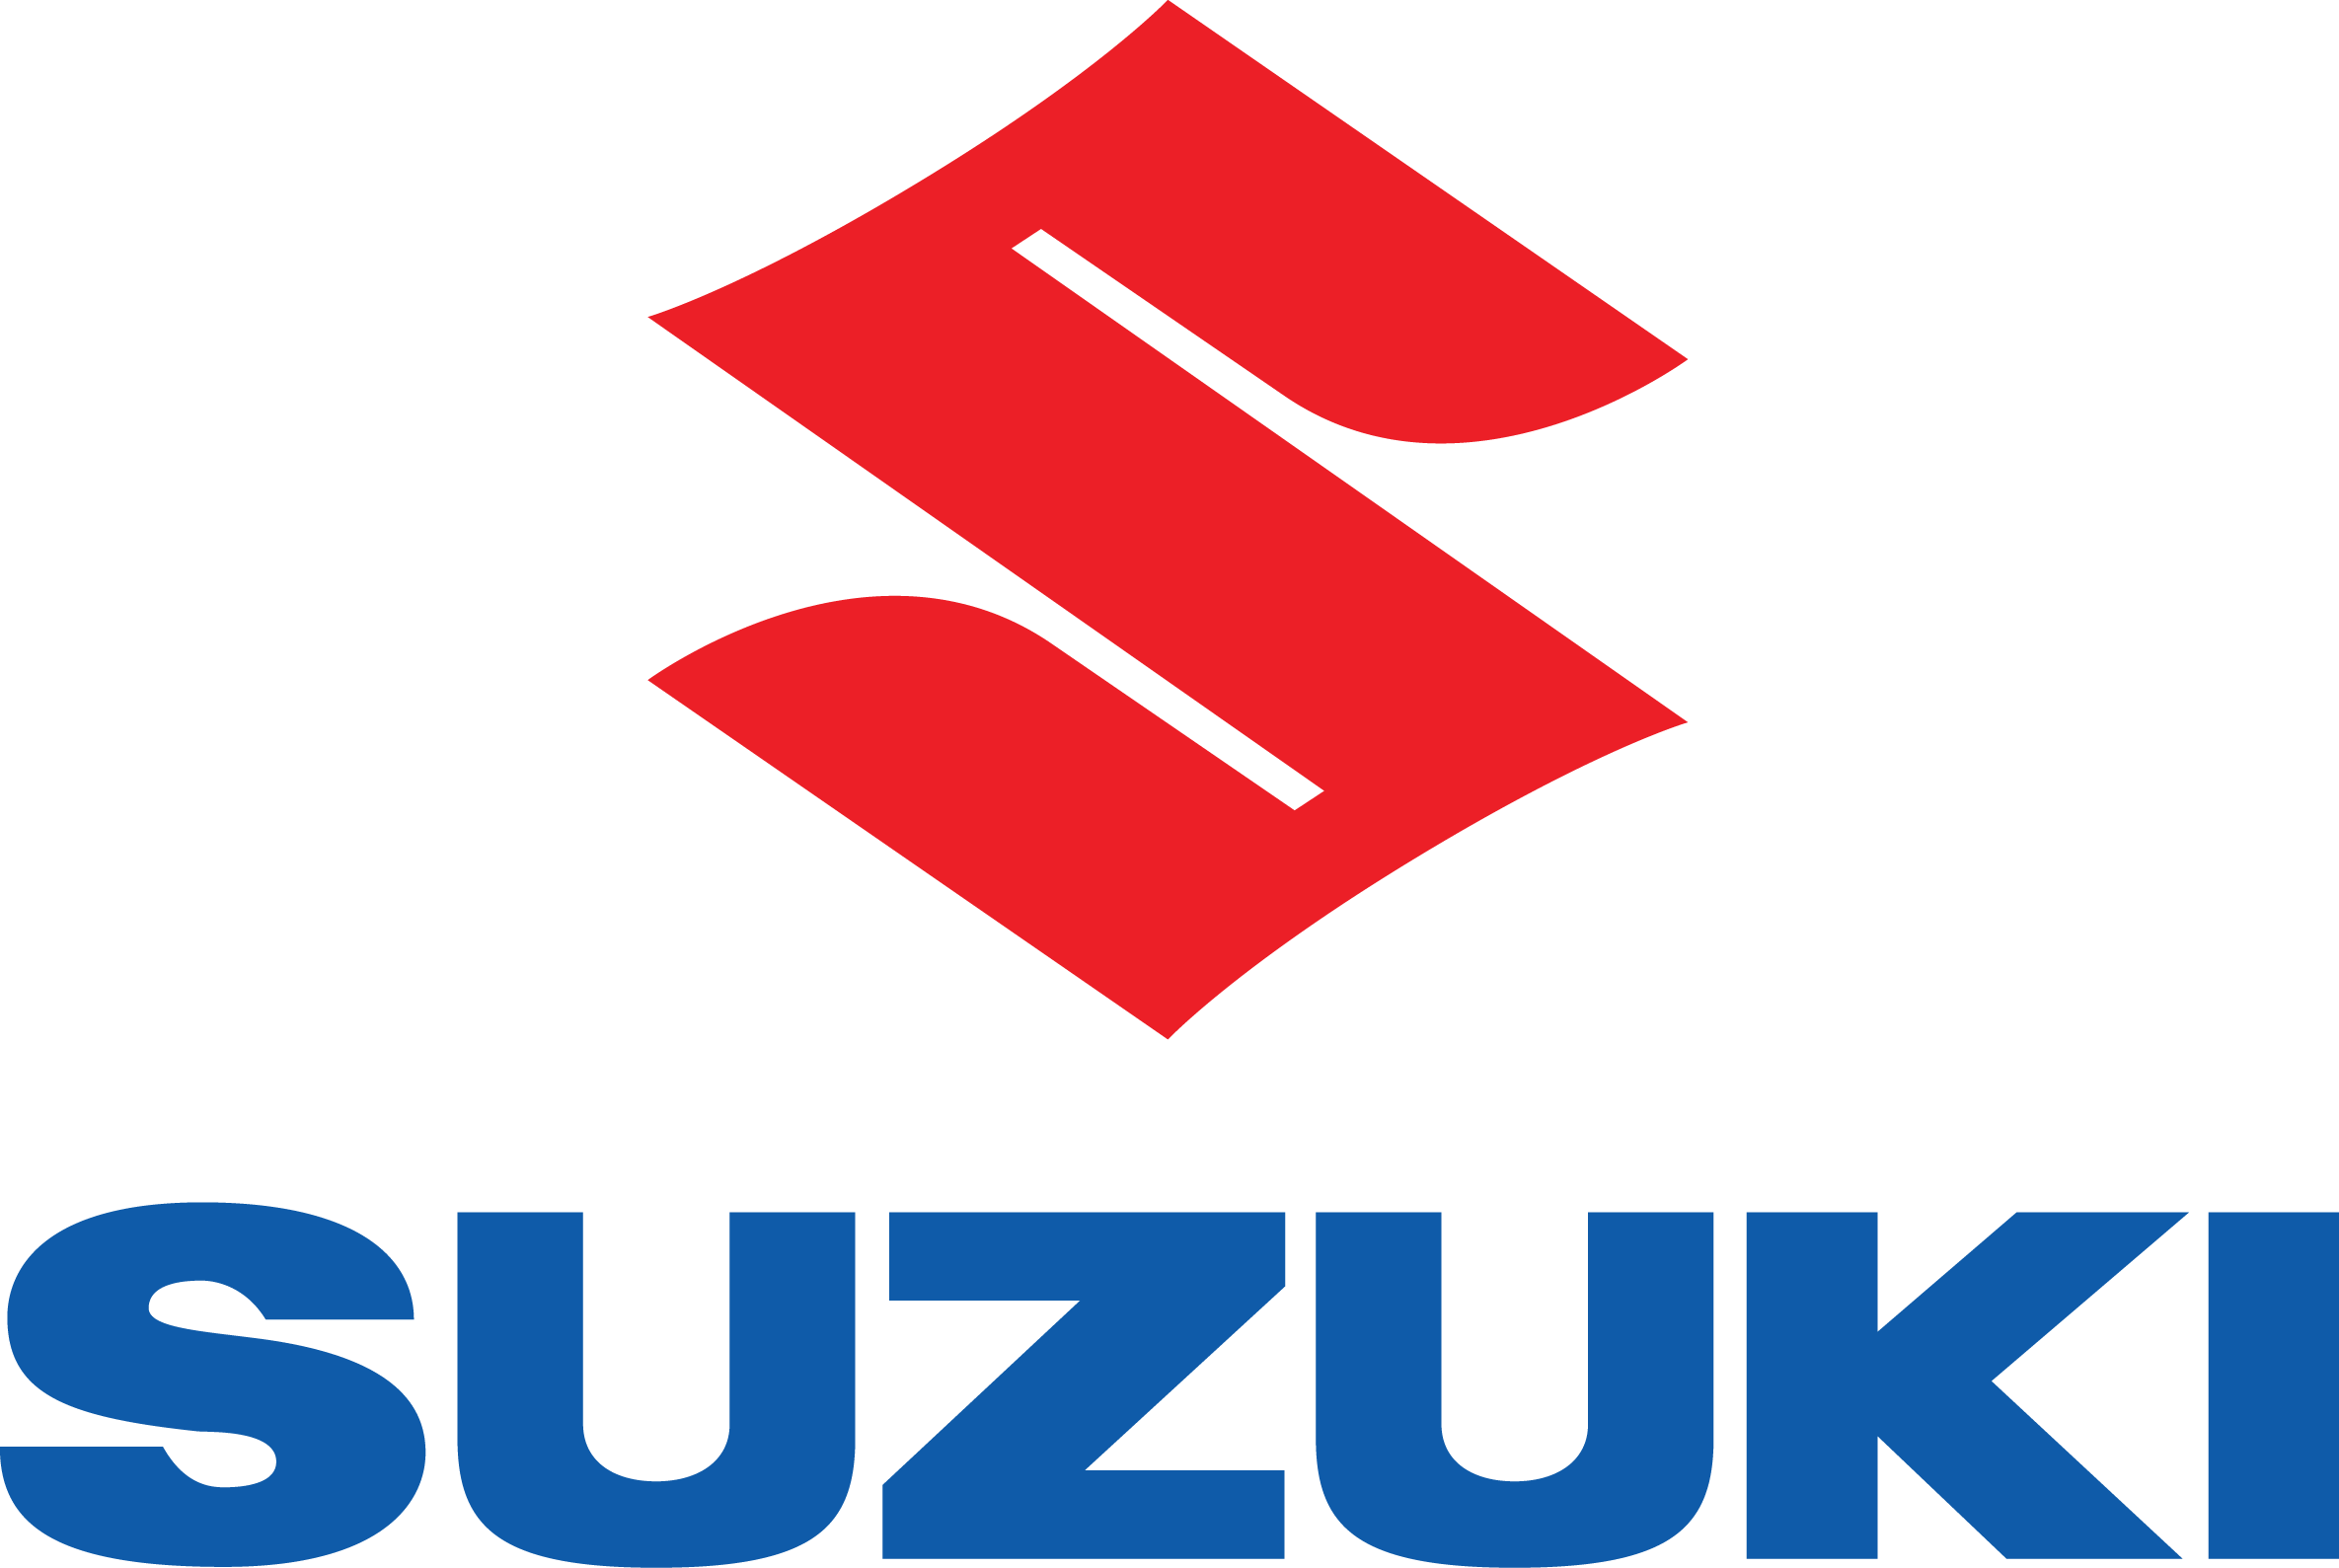 Blue and Red Suzuki Logo